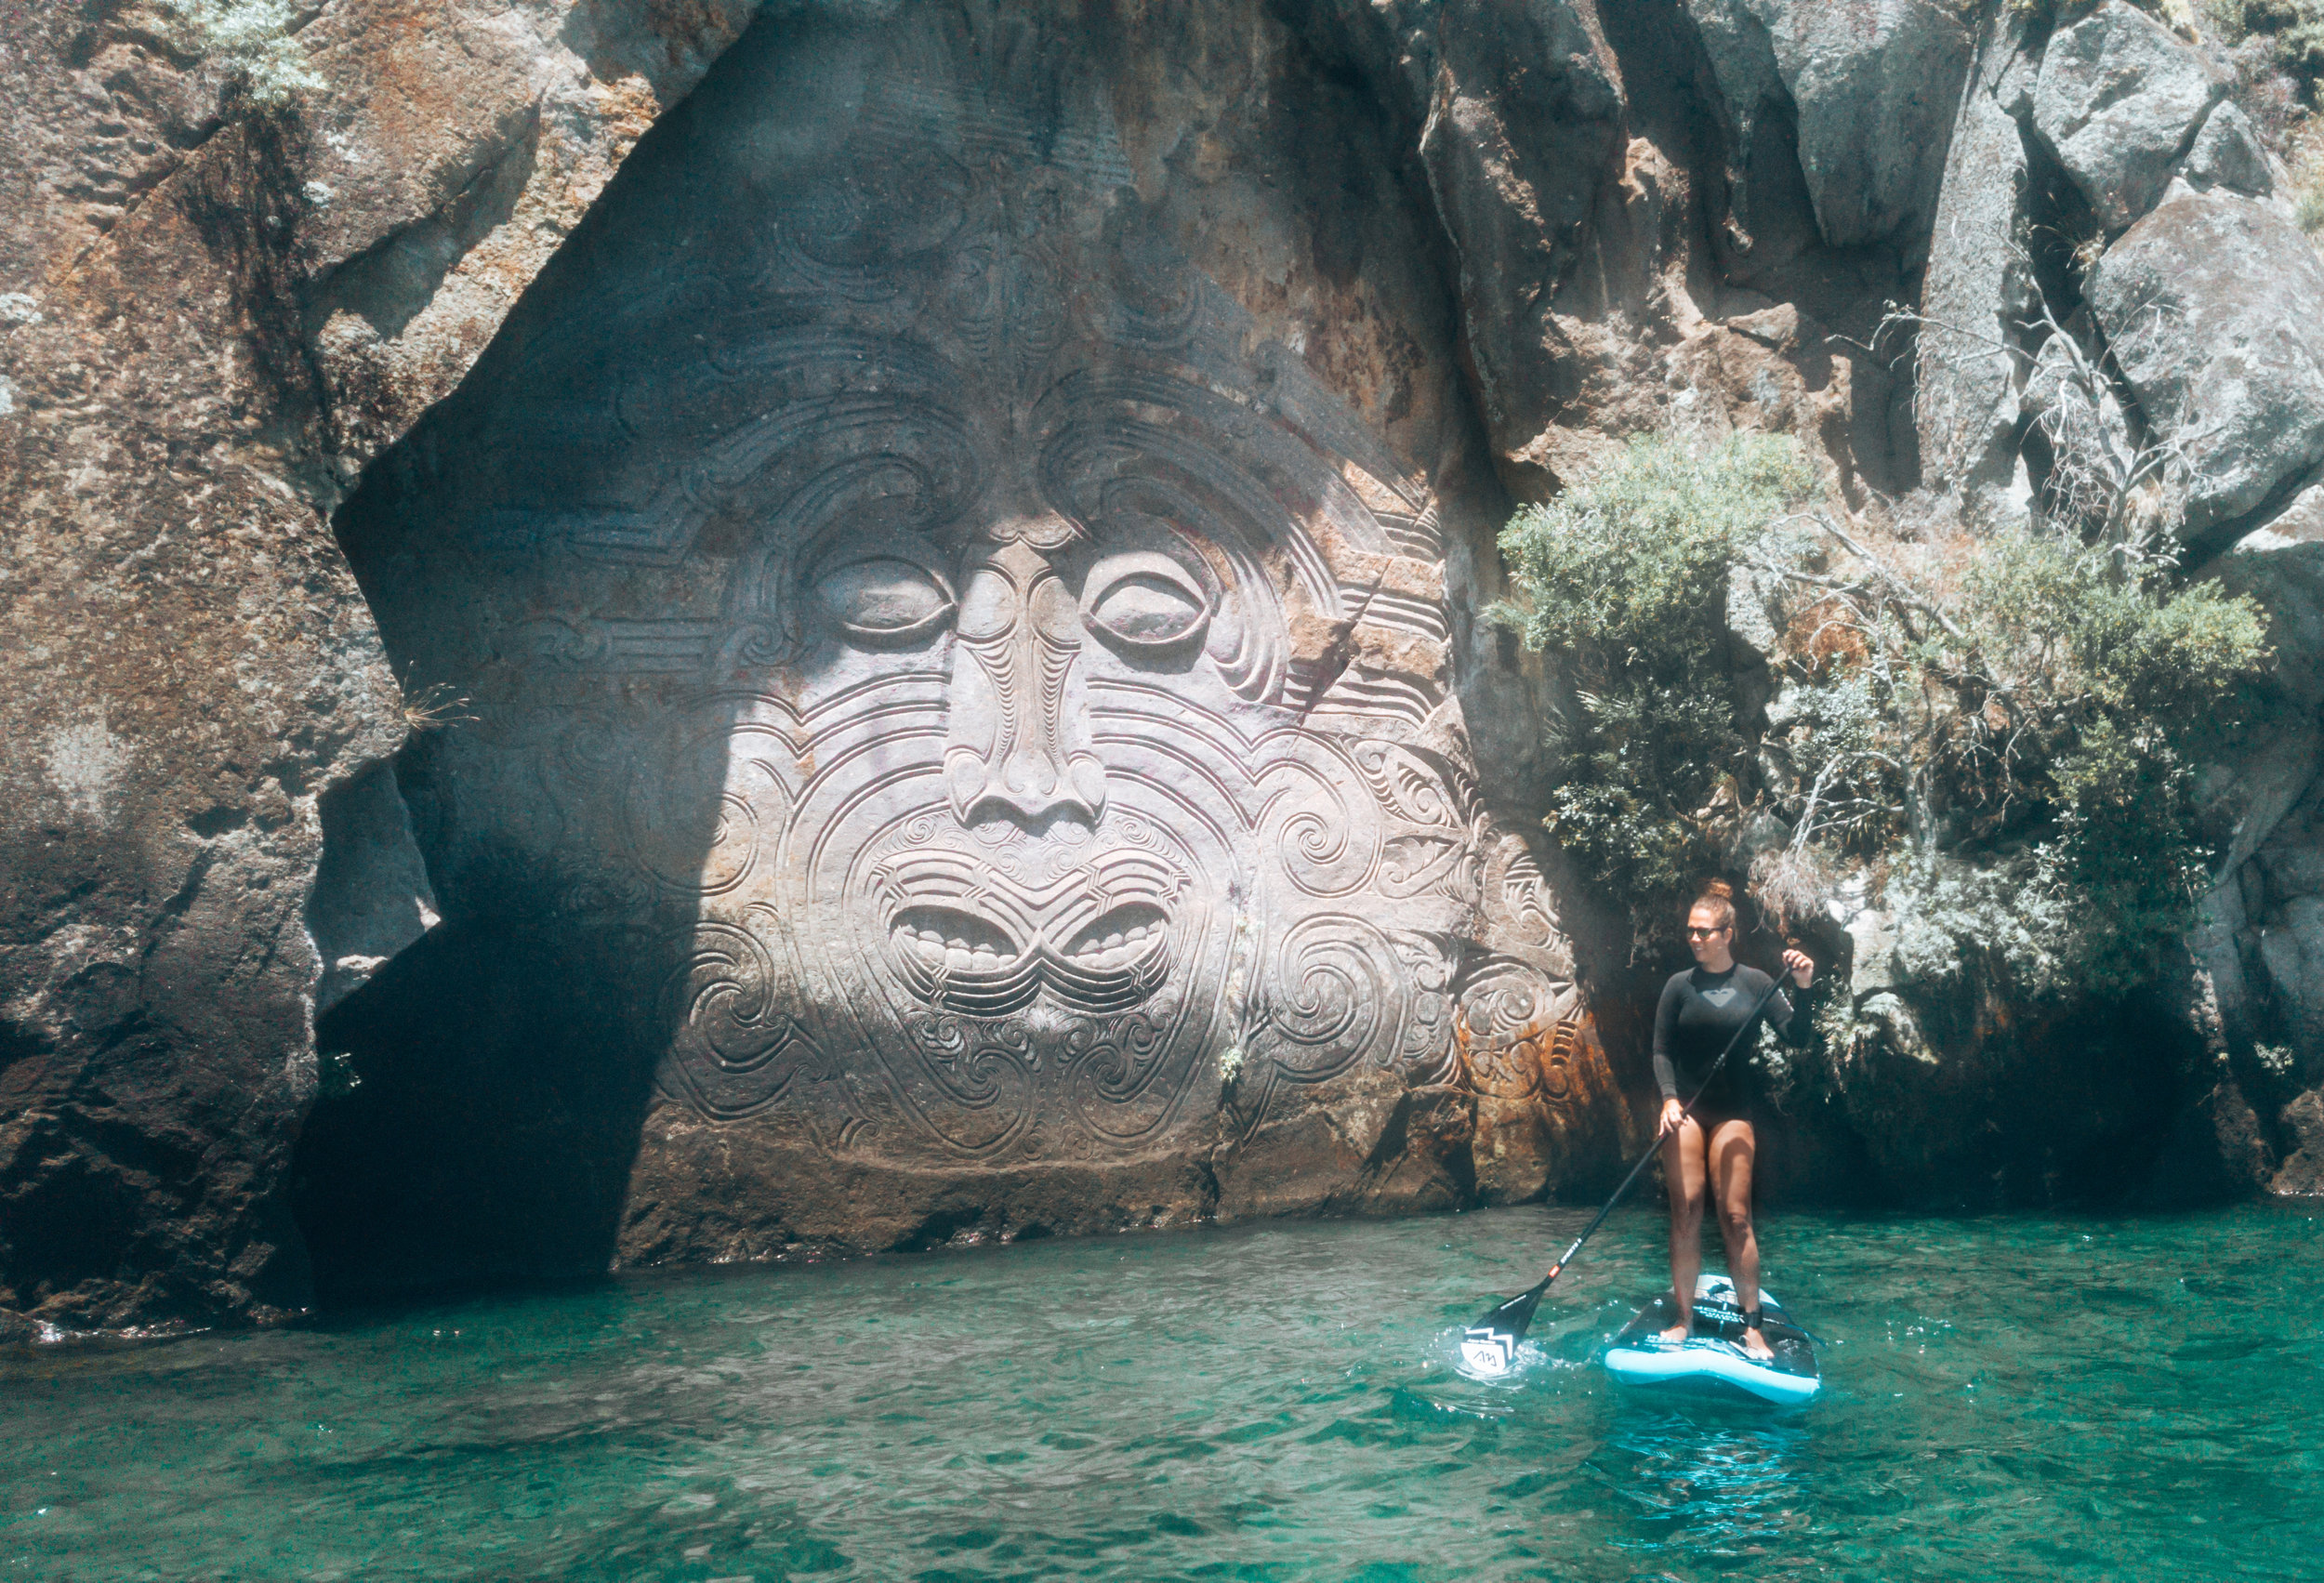 Paddleboarding Maori Carvings Taupo best SUP spots New Zealand